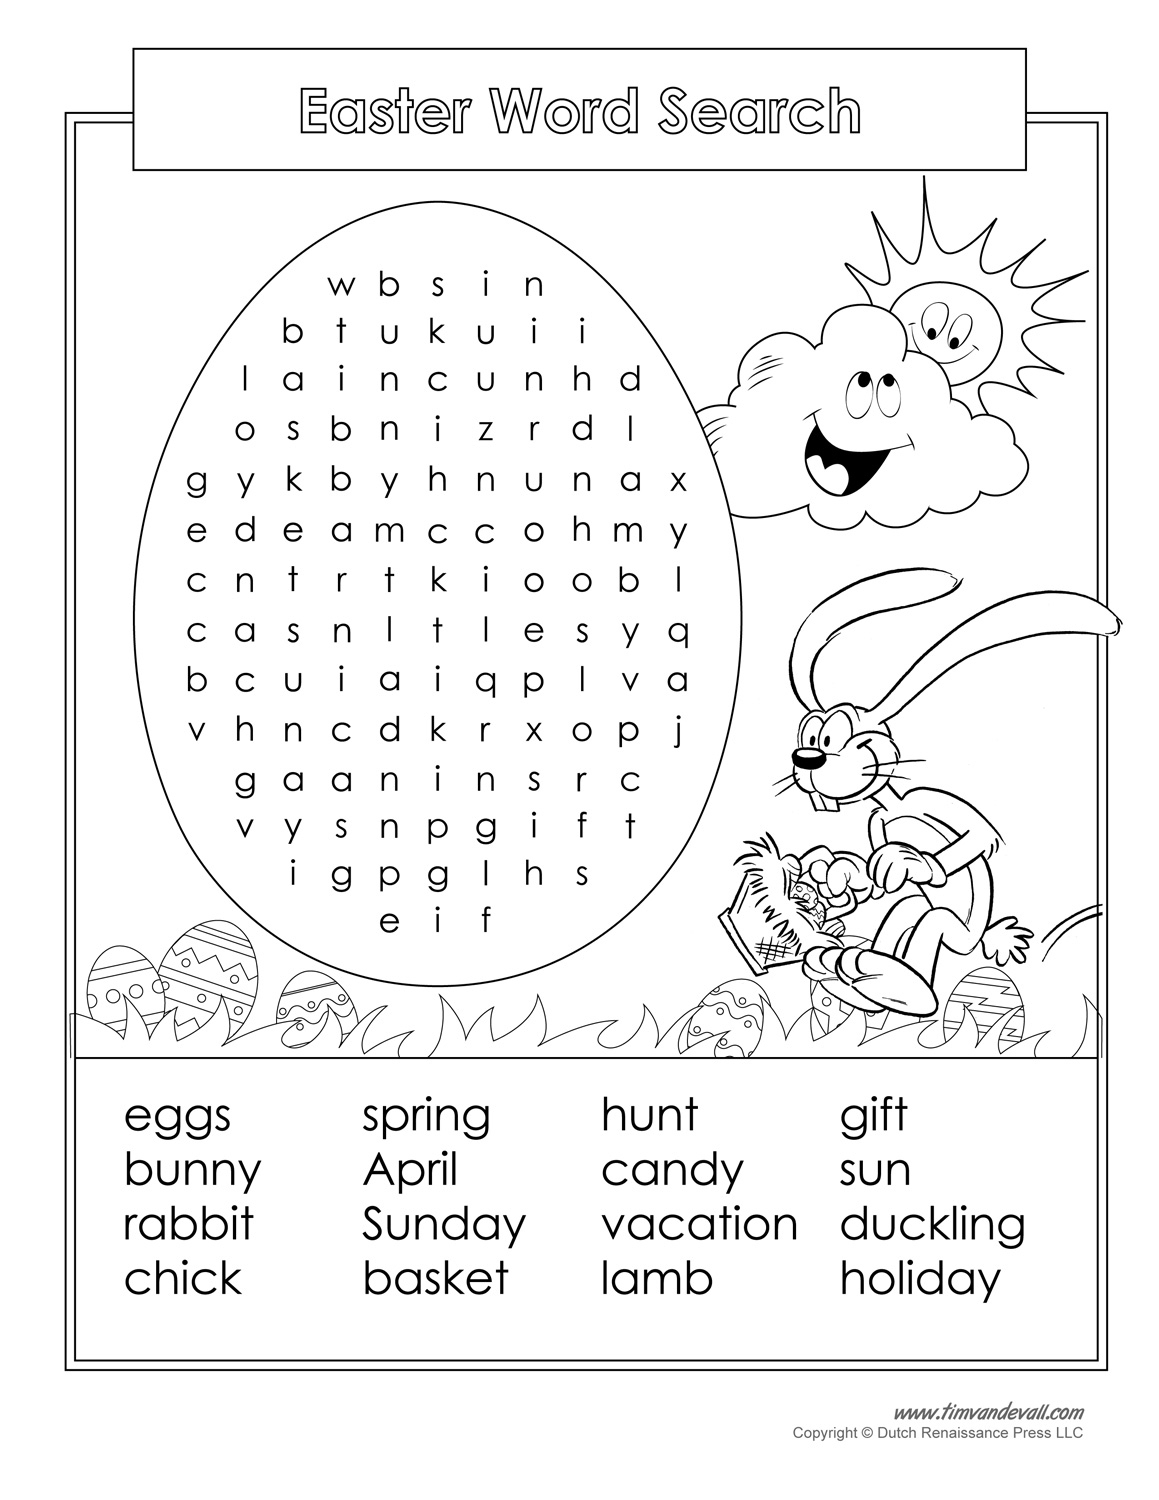 16 Printable Easter Word Search Puzzles | Kittybabylove - Free Printable Religious Easter Word Searches